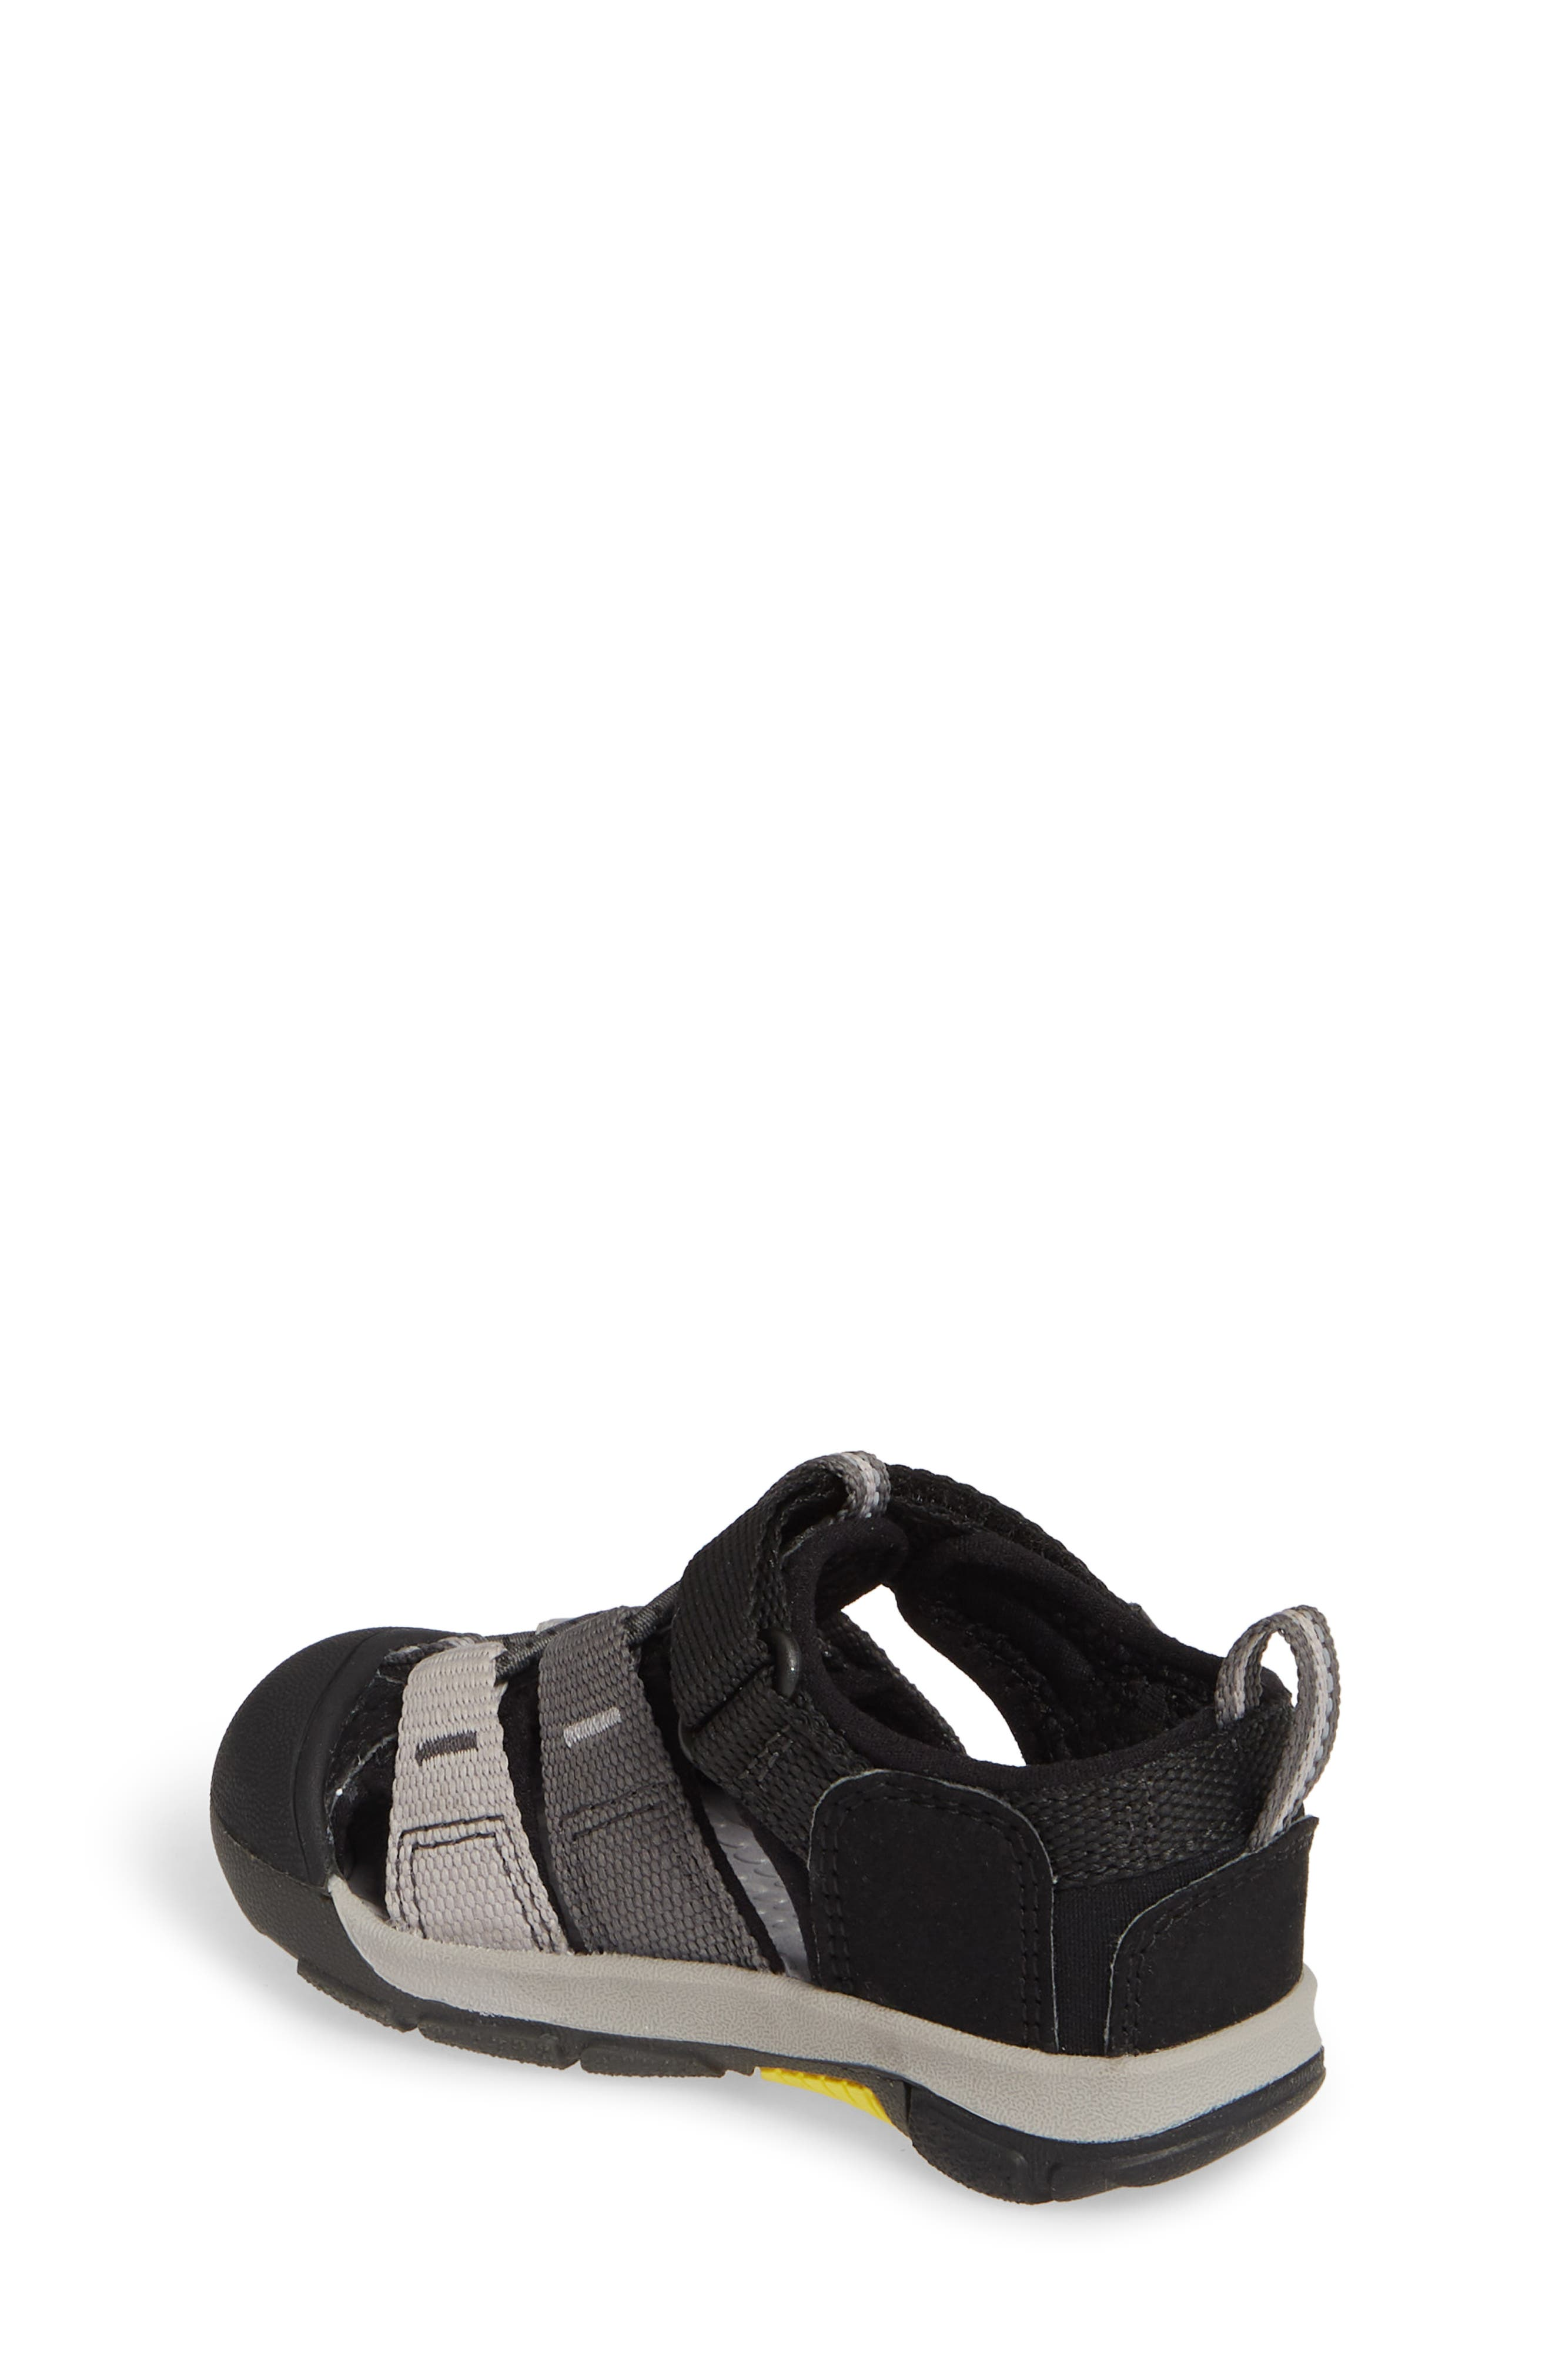 ,                             'Newport H2' Water Friendly Sandal,                             Alternate thumbnail 55, color,                             051